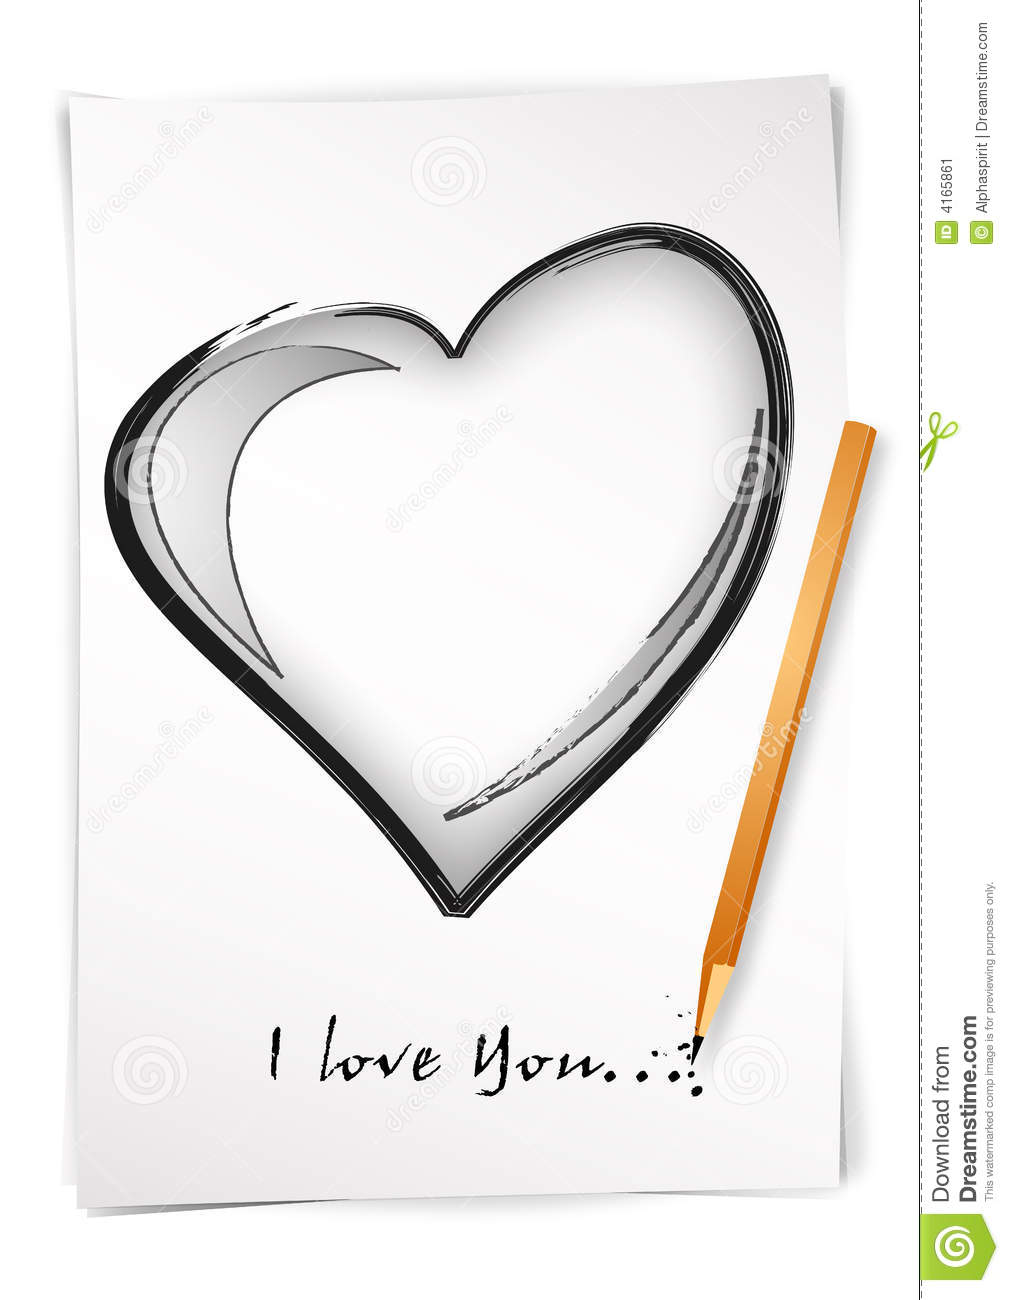 I Love You Drawings: Draw I Love You Stock Vector. Illustration Of Love